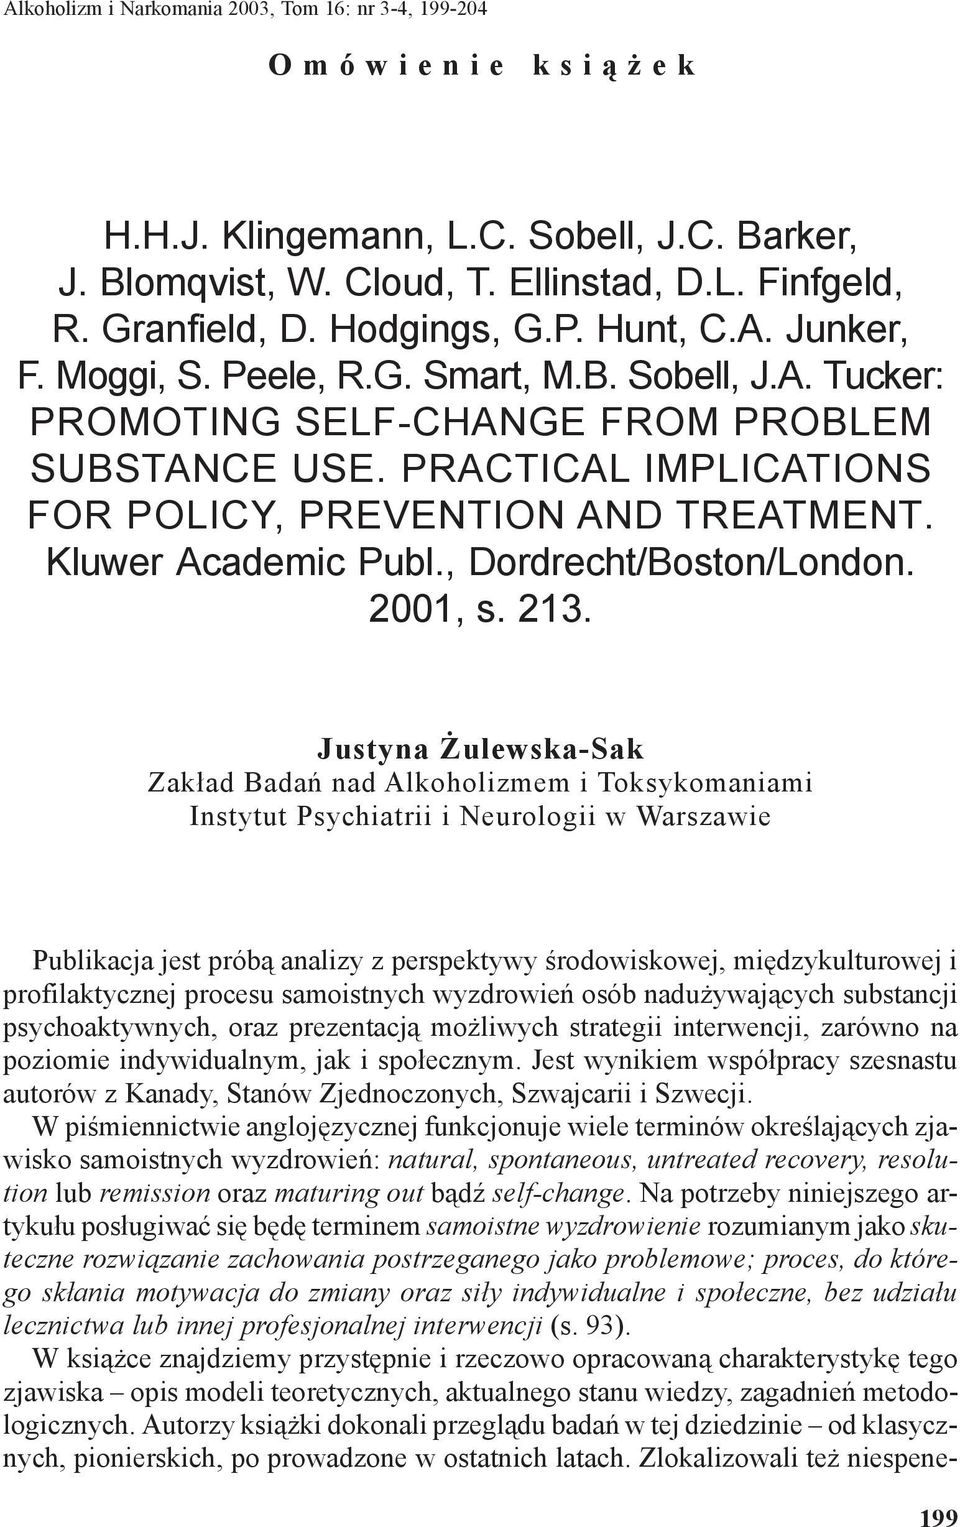 PRACTICAL IMPLICATIONS FOR POLICY, PREVENTION AND TREATMENT. Kluwer Academic Publ., Dordrecht/Boston/London. 2001, s. 213.